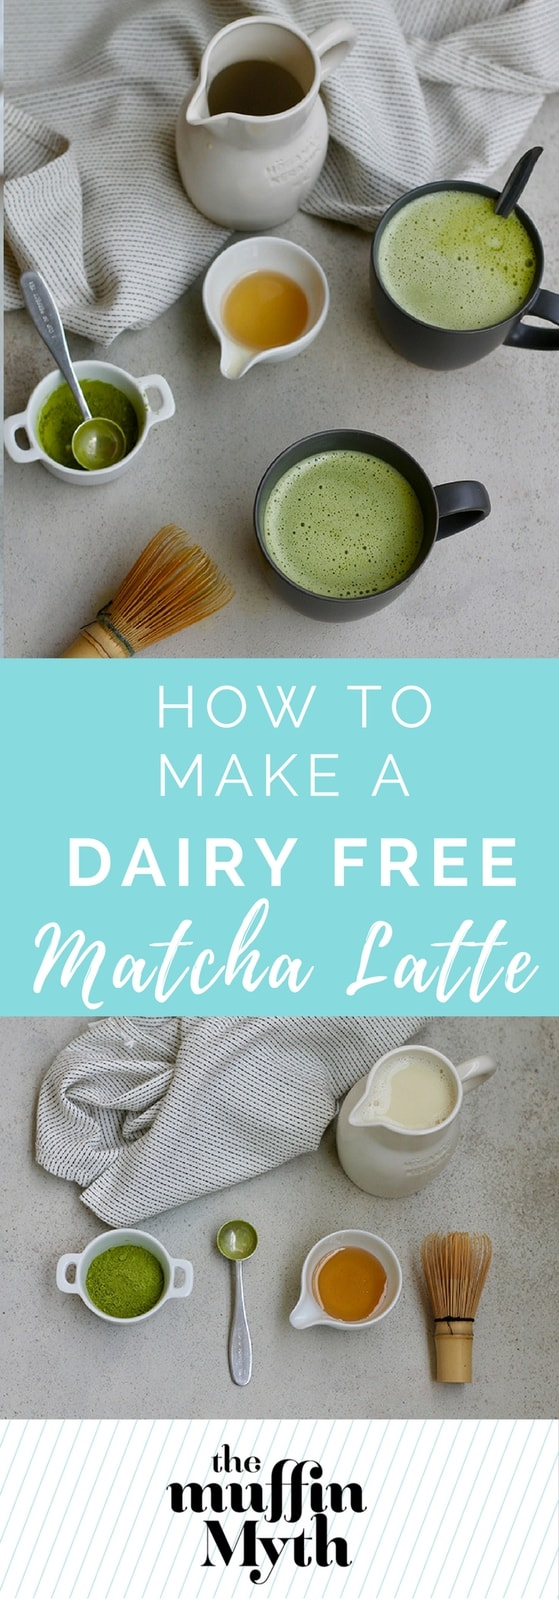 Learn how to make a dairy-free matcha latte at home with oat milk and honey. Simple to make and delicious! // themuffinmyth.com